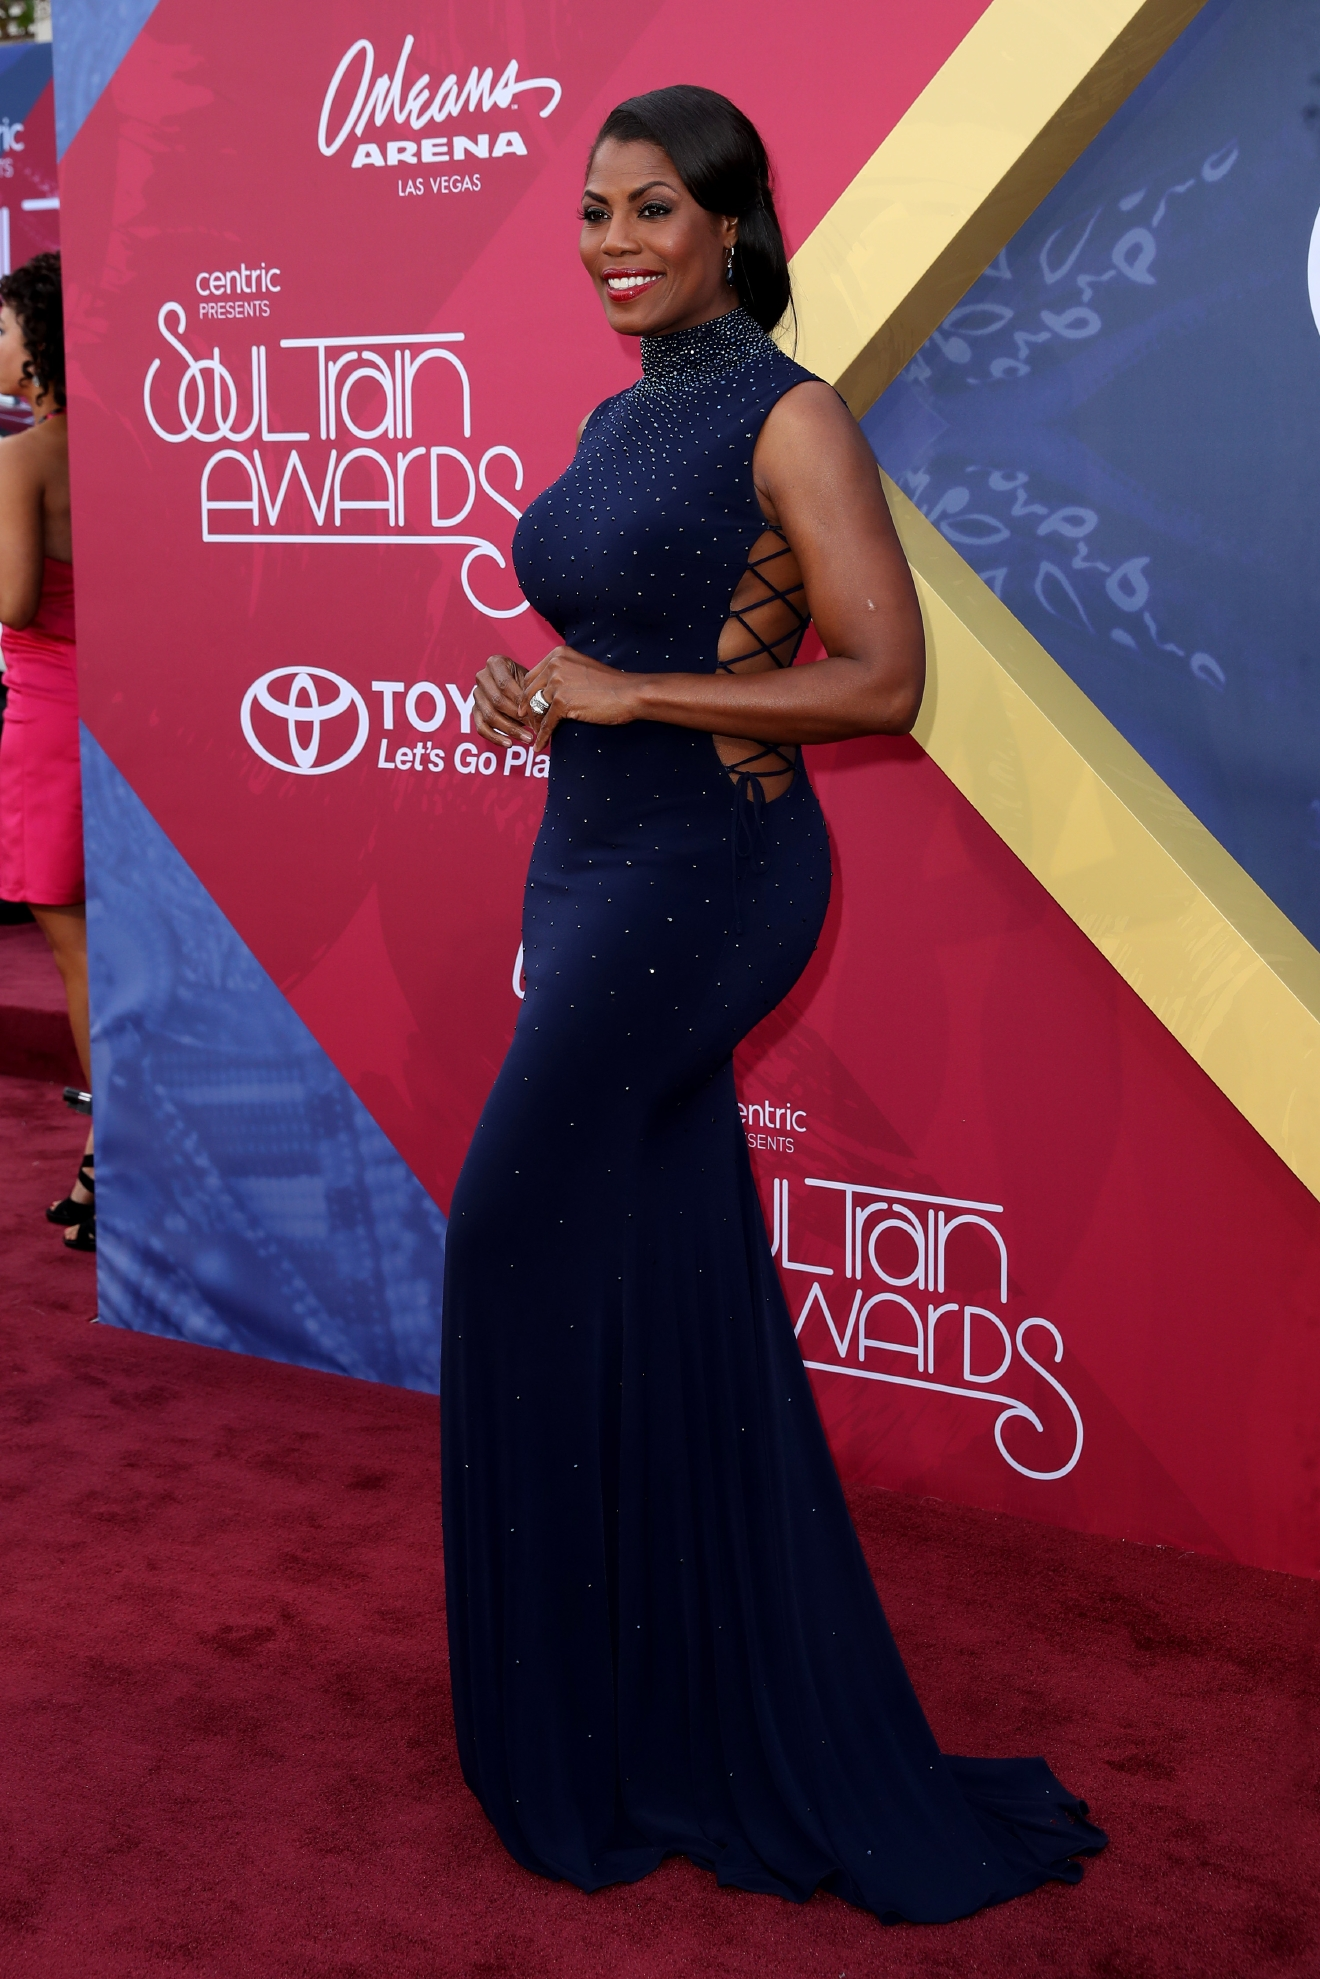 Soul Train Awards 2016 Red Carpet Arrivals at The Orleans Arena in Las Vegas                                    Featuring: Omarosa                  Where: Las Vegas, Nevada, United States                  When: 07 Nov 2016                  Credit: Judy Eddy/WENN.com